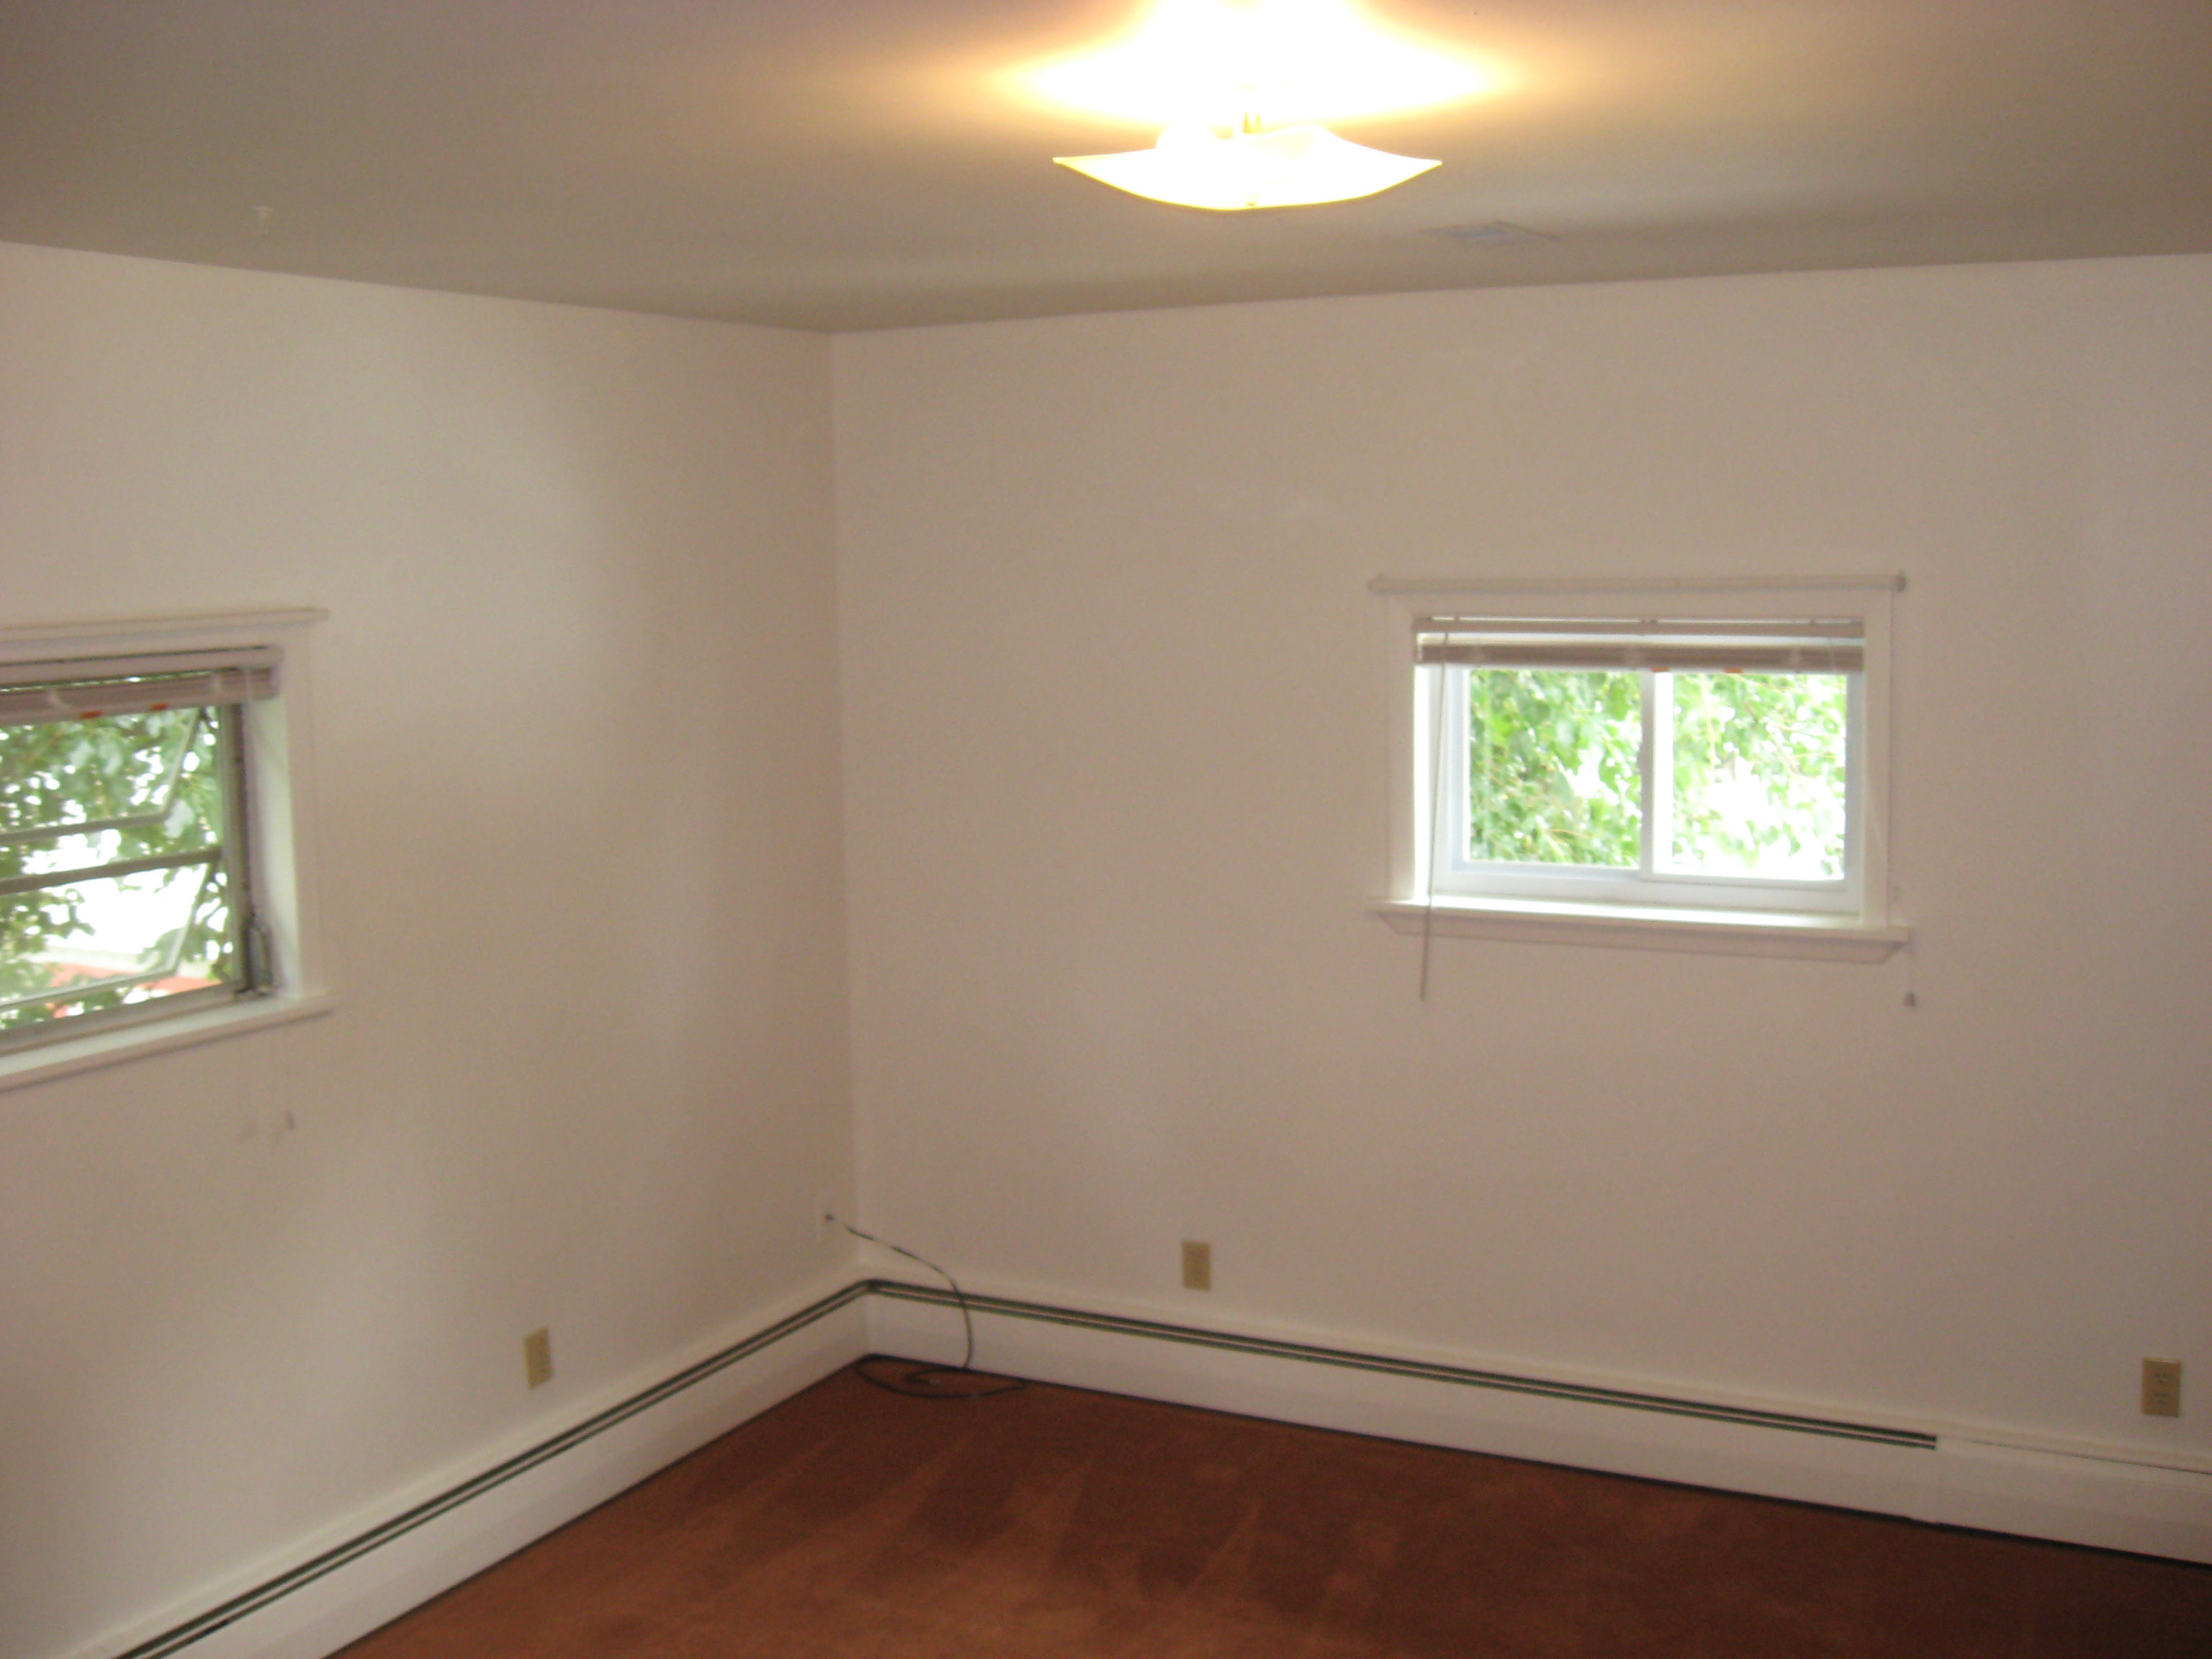 68 n vine st apt 2a westerville oh 2 bedroom - 2 bedroom apartments westerville ohio ...